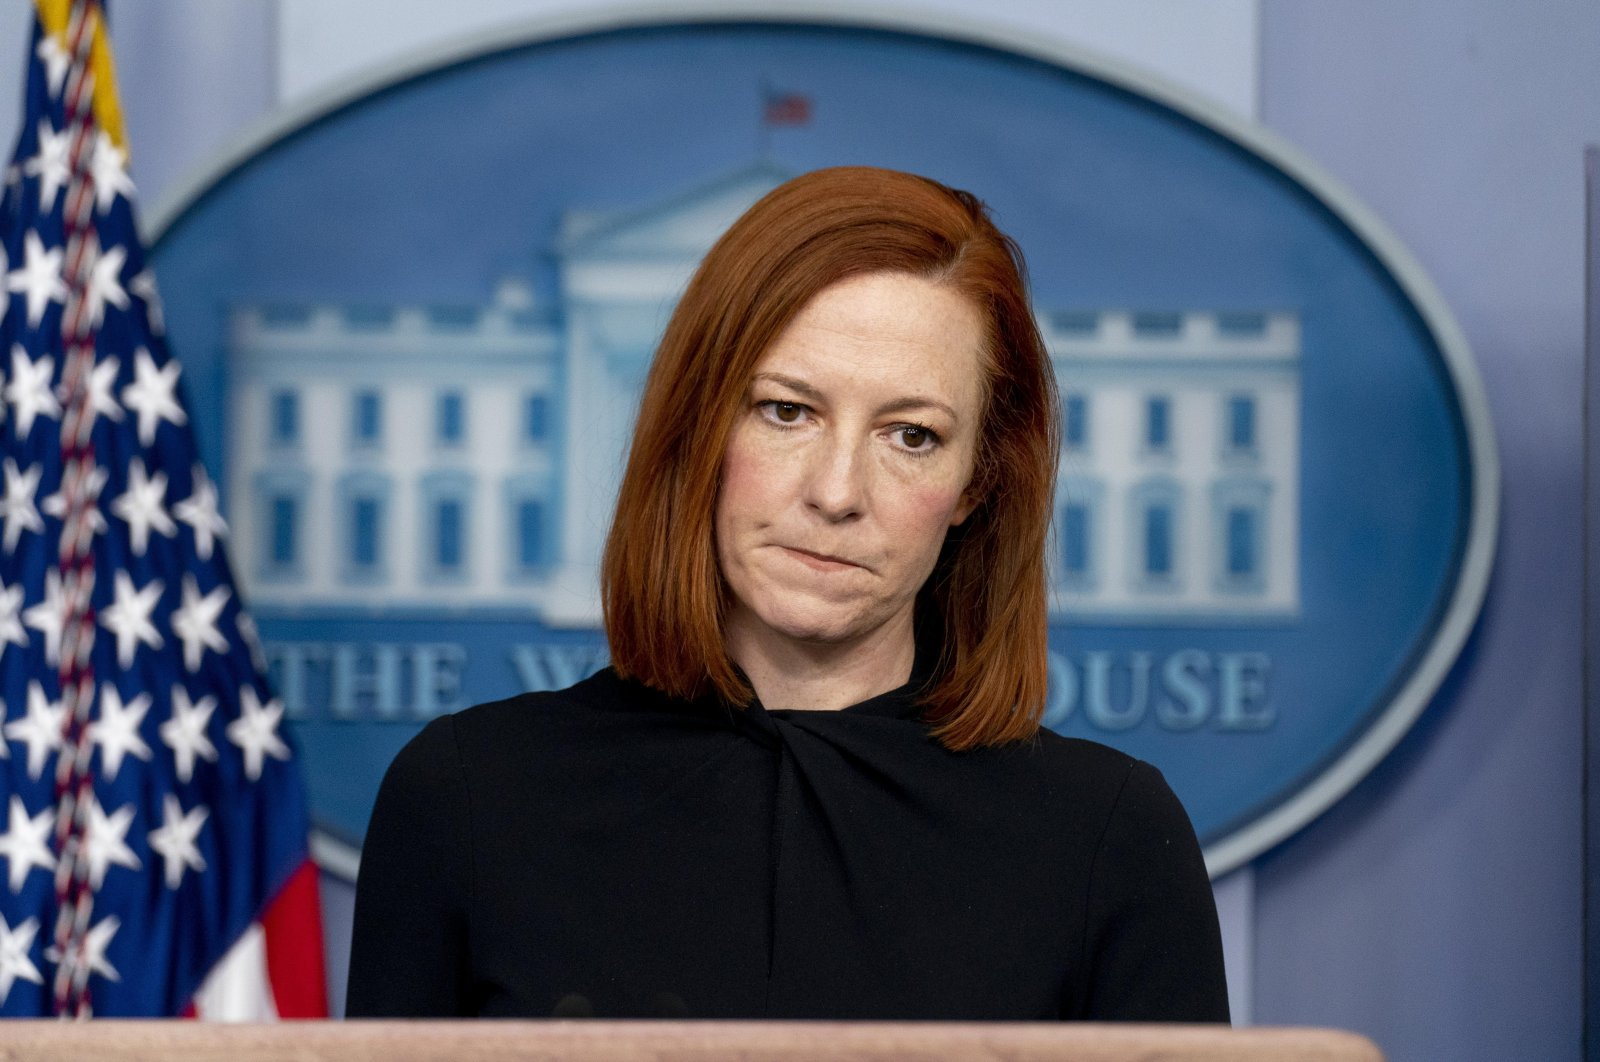 White House press secretary Jen Psaki takes a question from a reporter during a press briefing at the White House, Washington, D.C., U.S., March 1, 2021. (AP Photo)